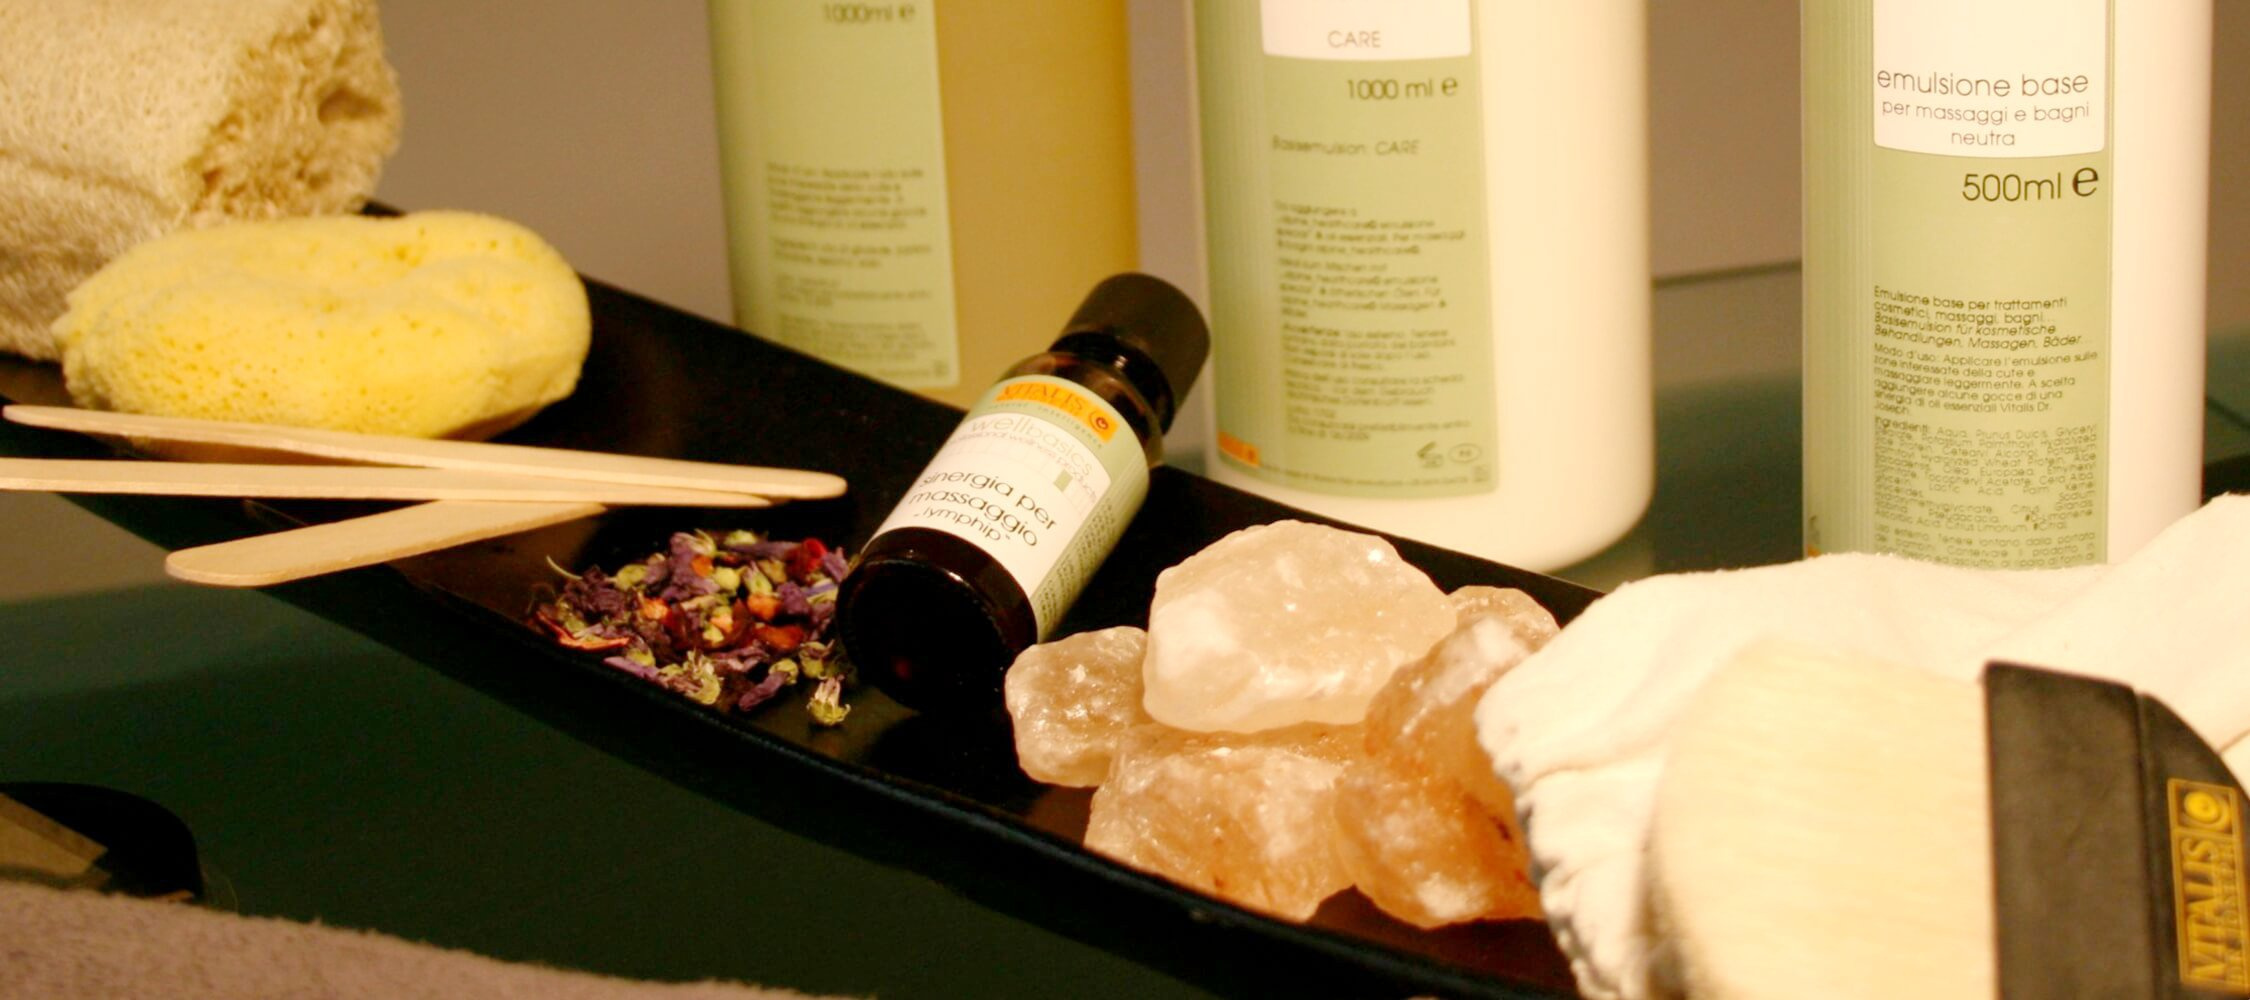 City_Hotel_Merano_Spa_Massage_oil_Vitalis_Dr_Josef_IMG_6409_2250x1000